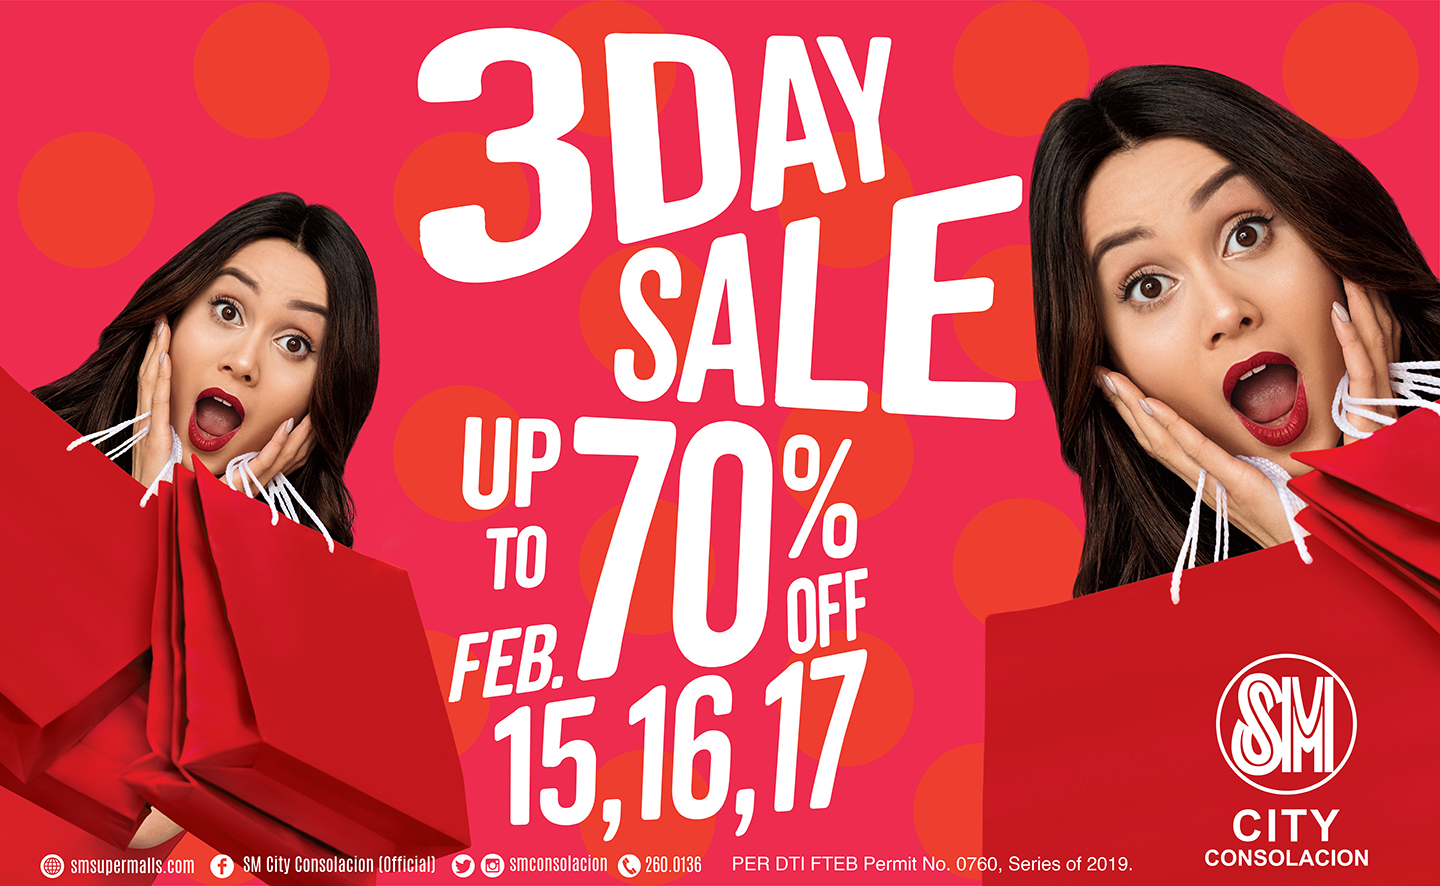 SM City Consolacion brings 3-Day Sale on February all for the Love of Shopping